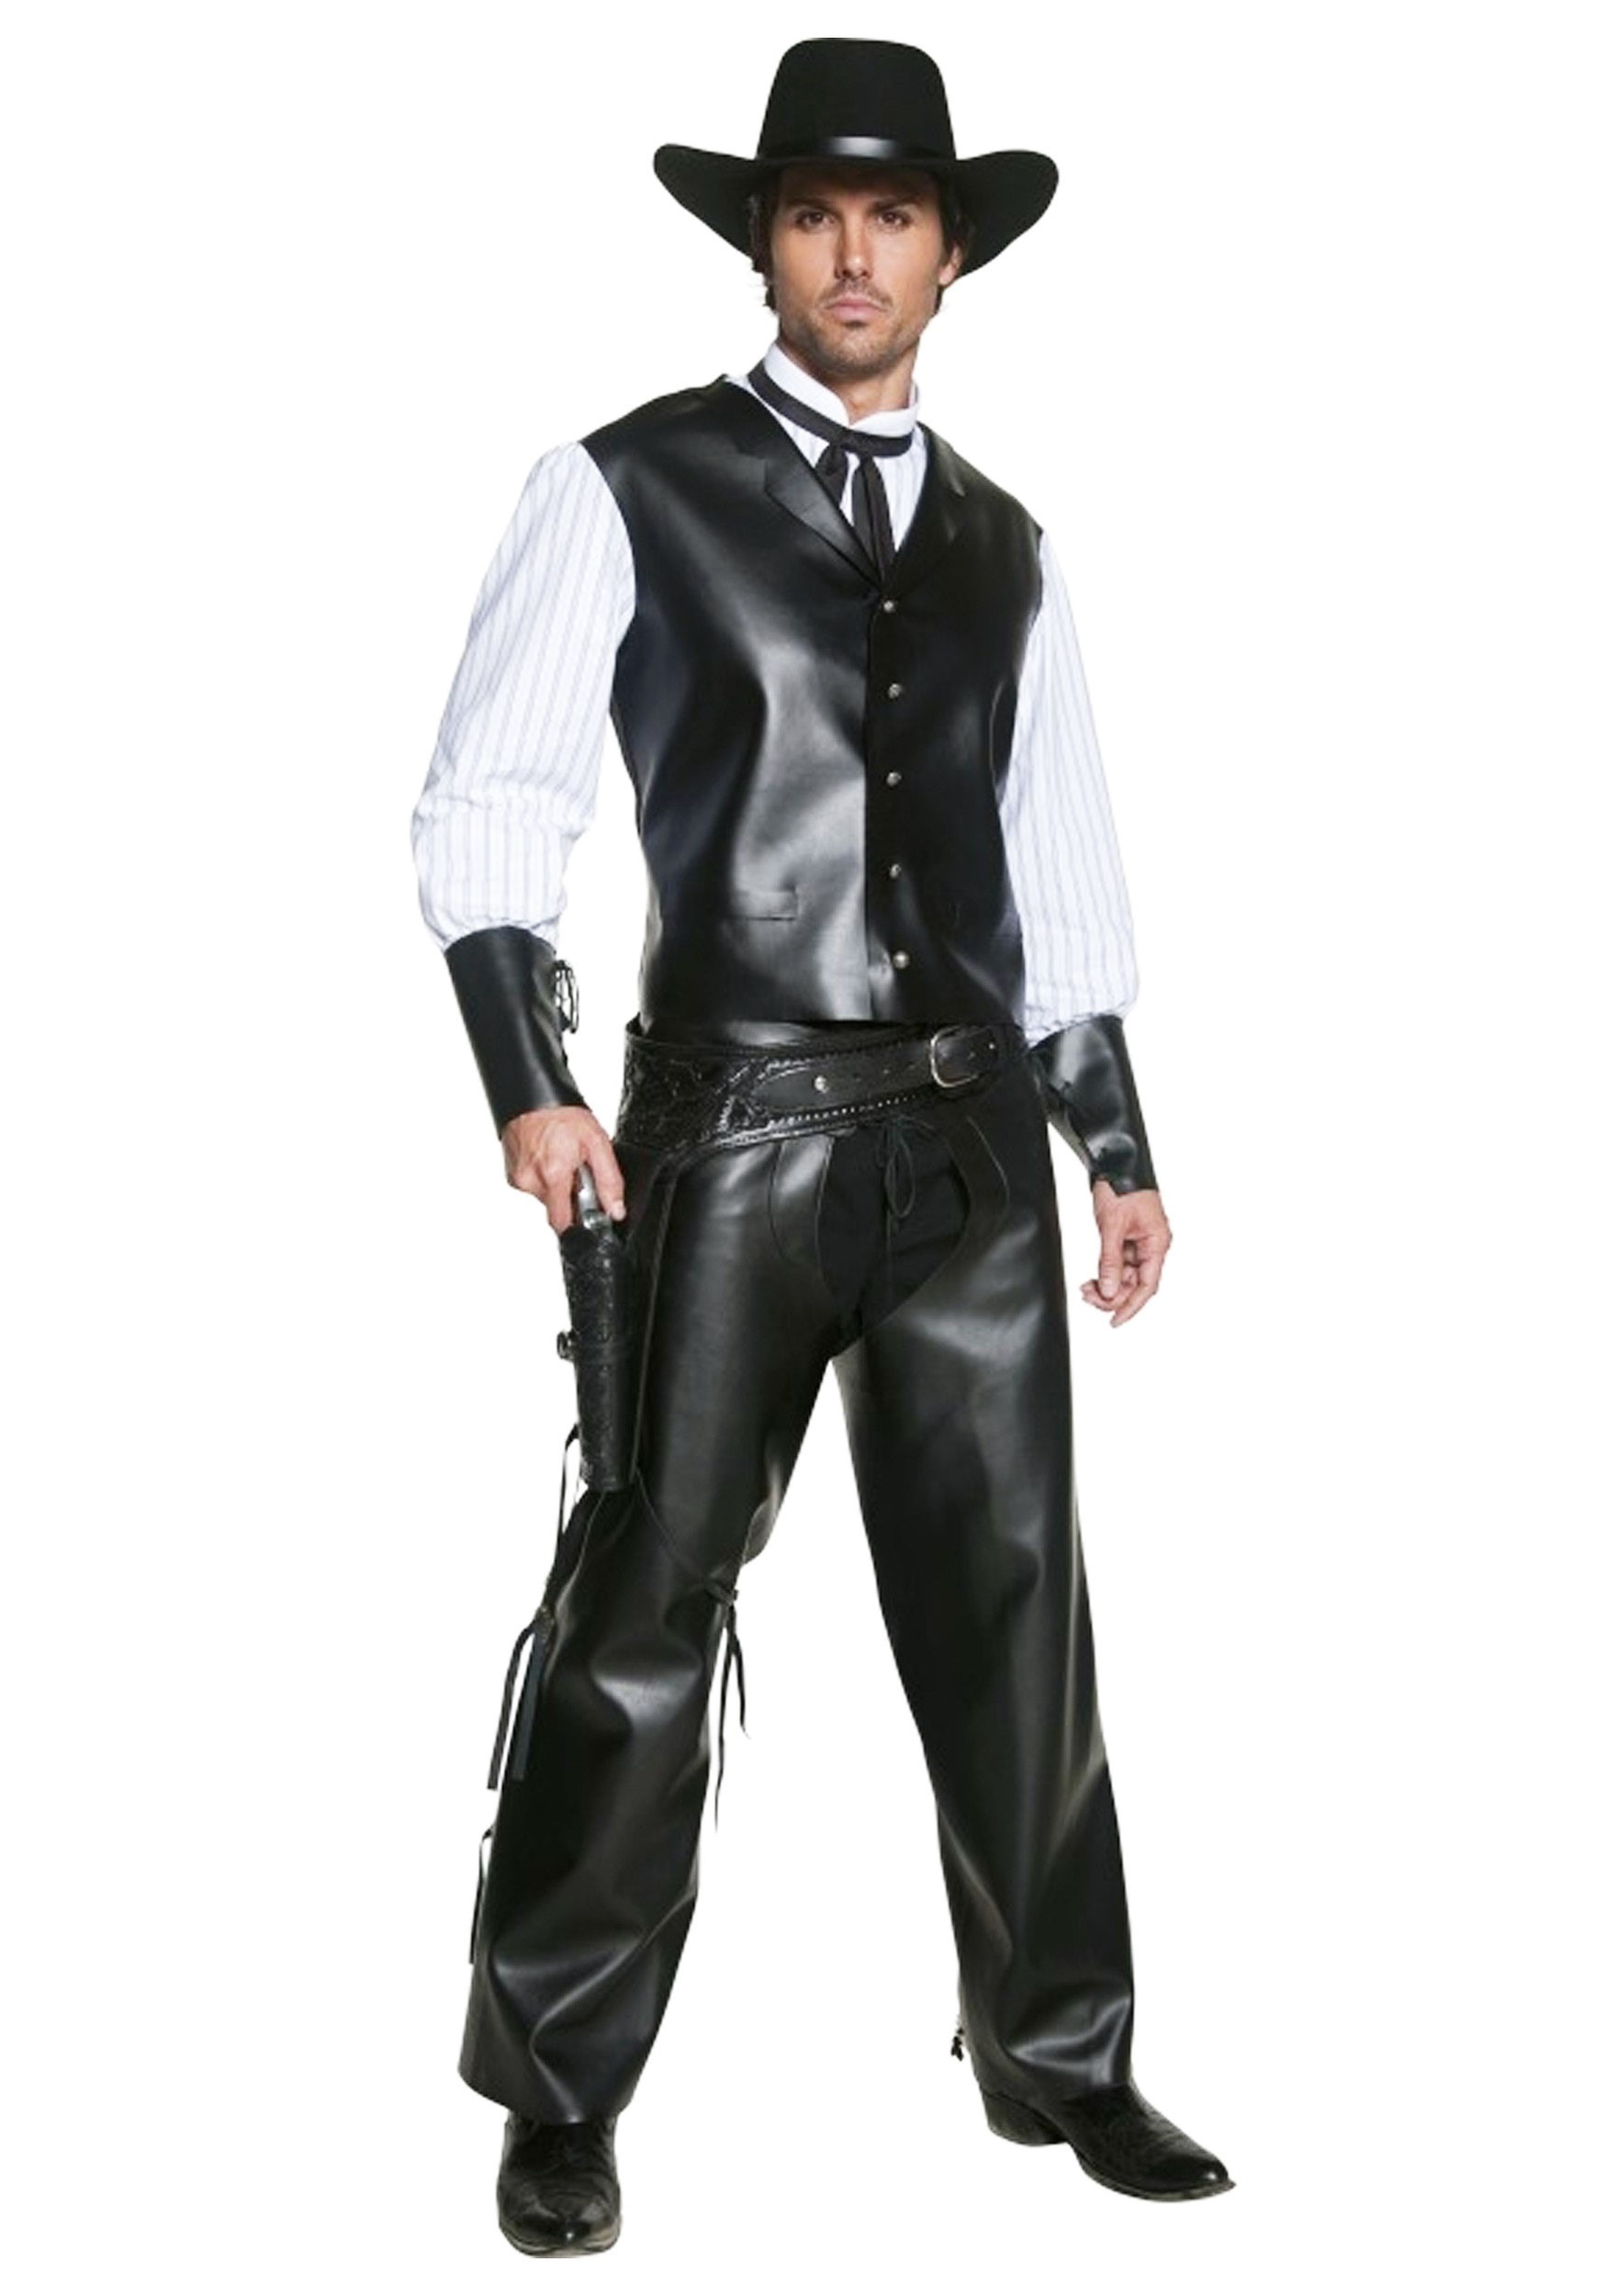 b93a85d2c Authentic Western Gunslinger Costume